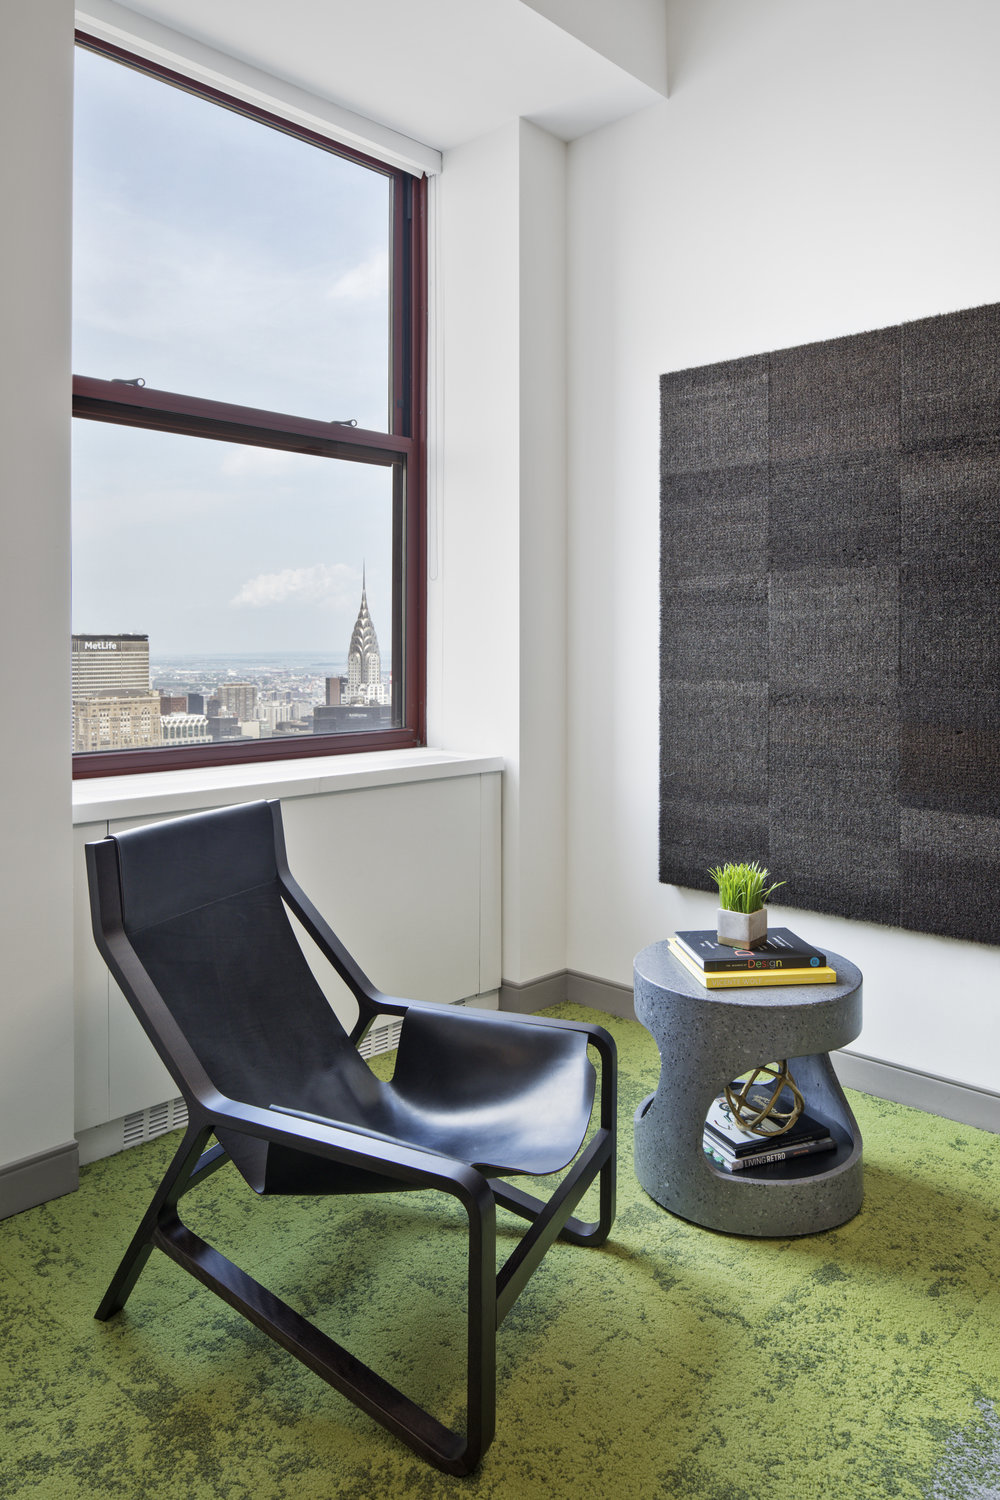 Leather-Chair-Custom-Office-Wall-Covering-JMorrisDesign-Brooklyn-Interior-Designer.jpg